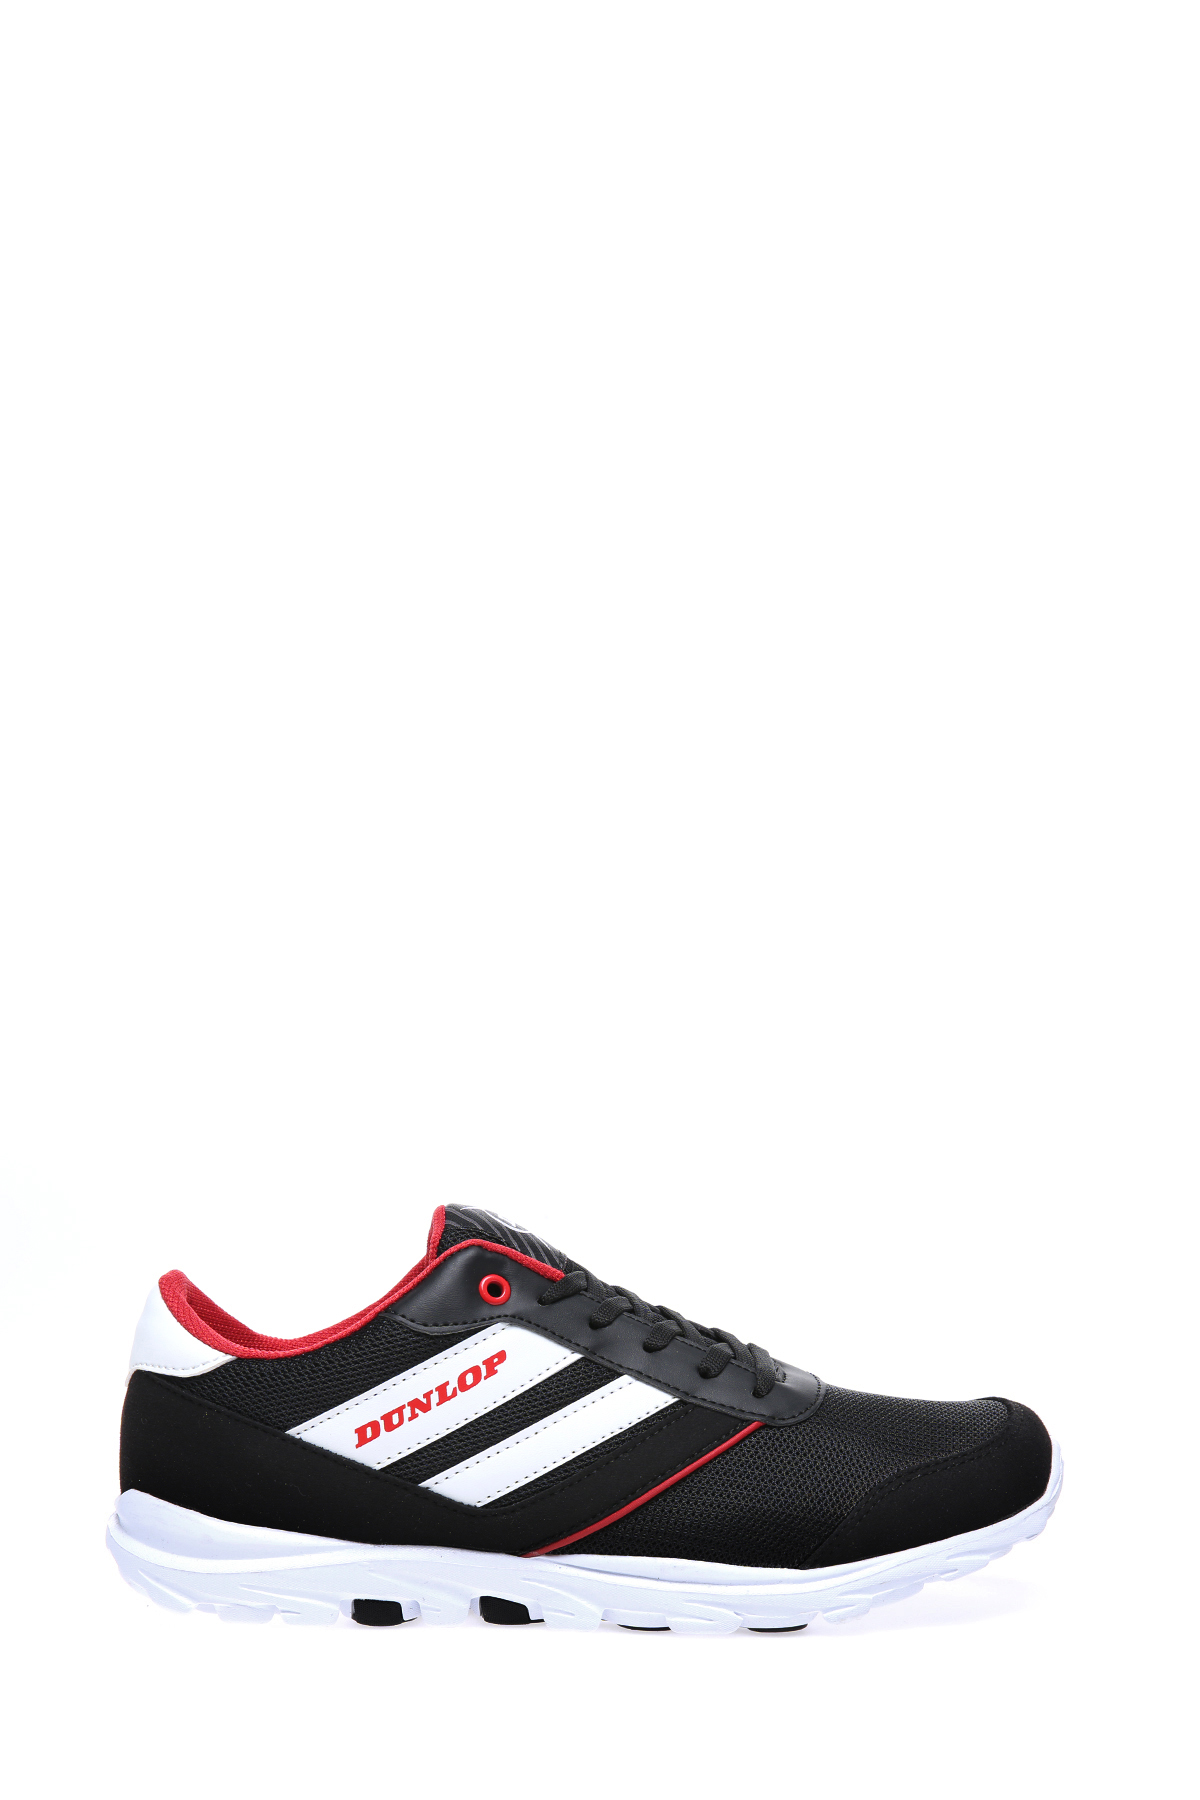 DUNLOP chaussures homme 7120359M